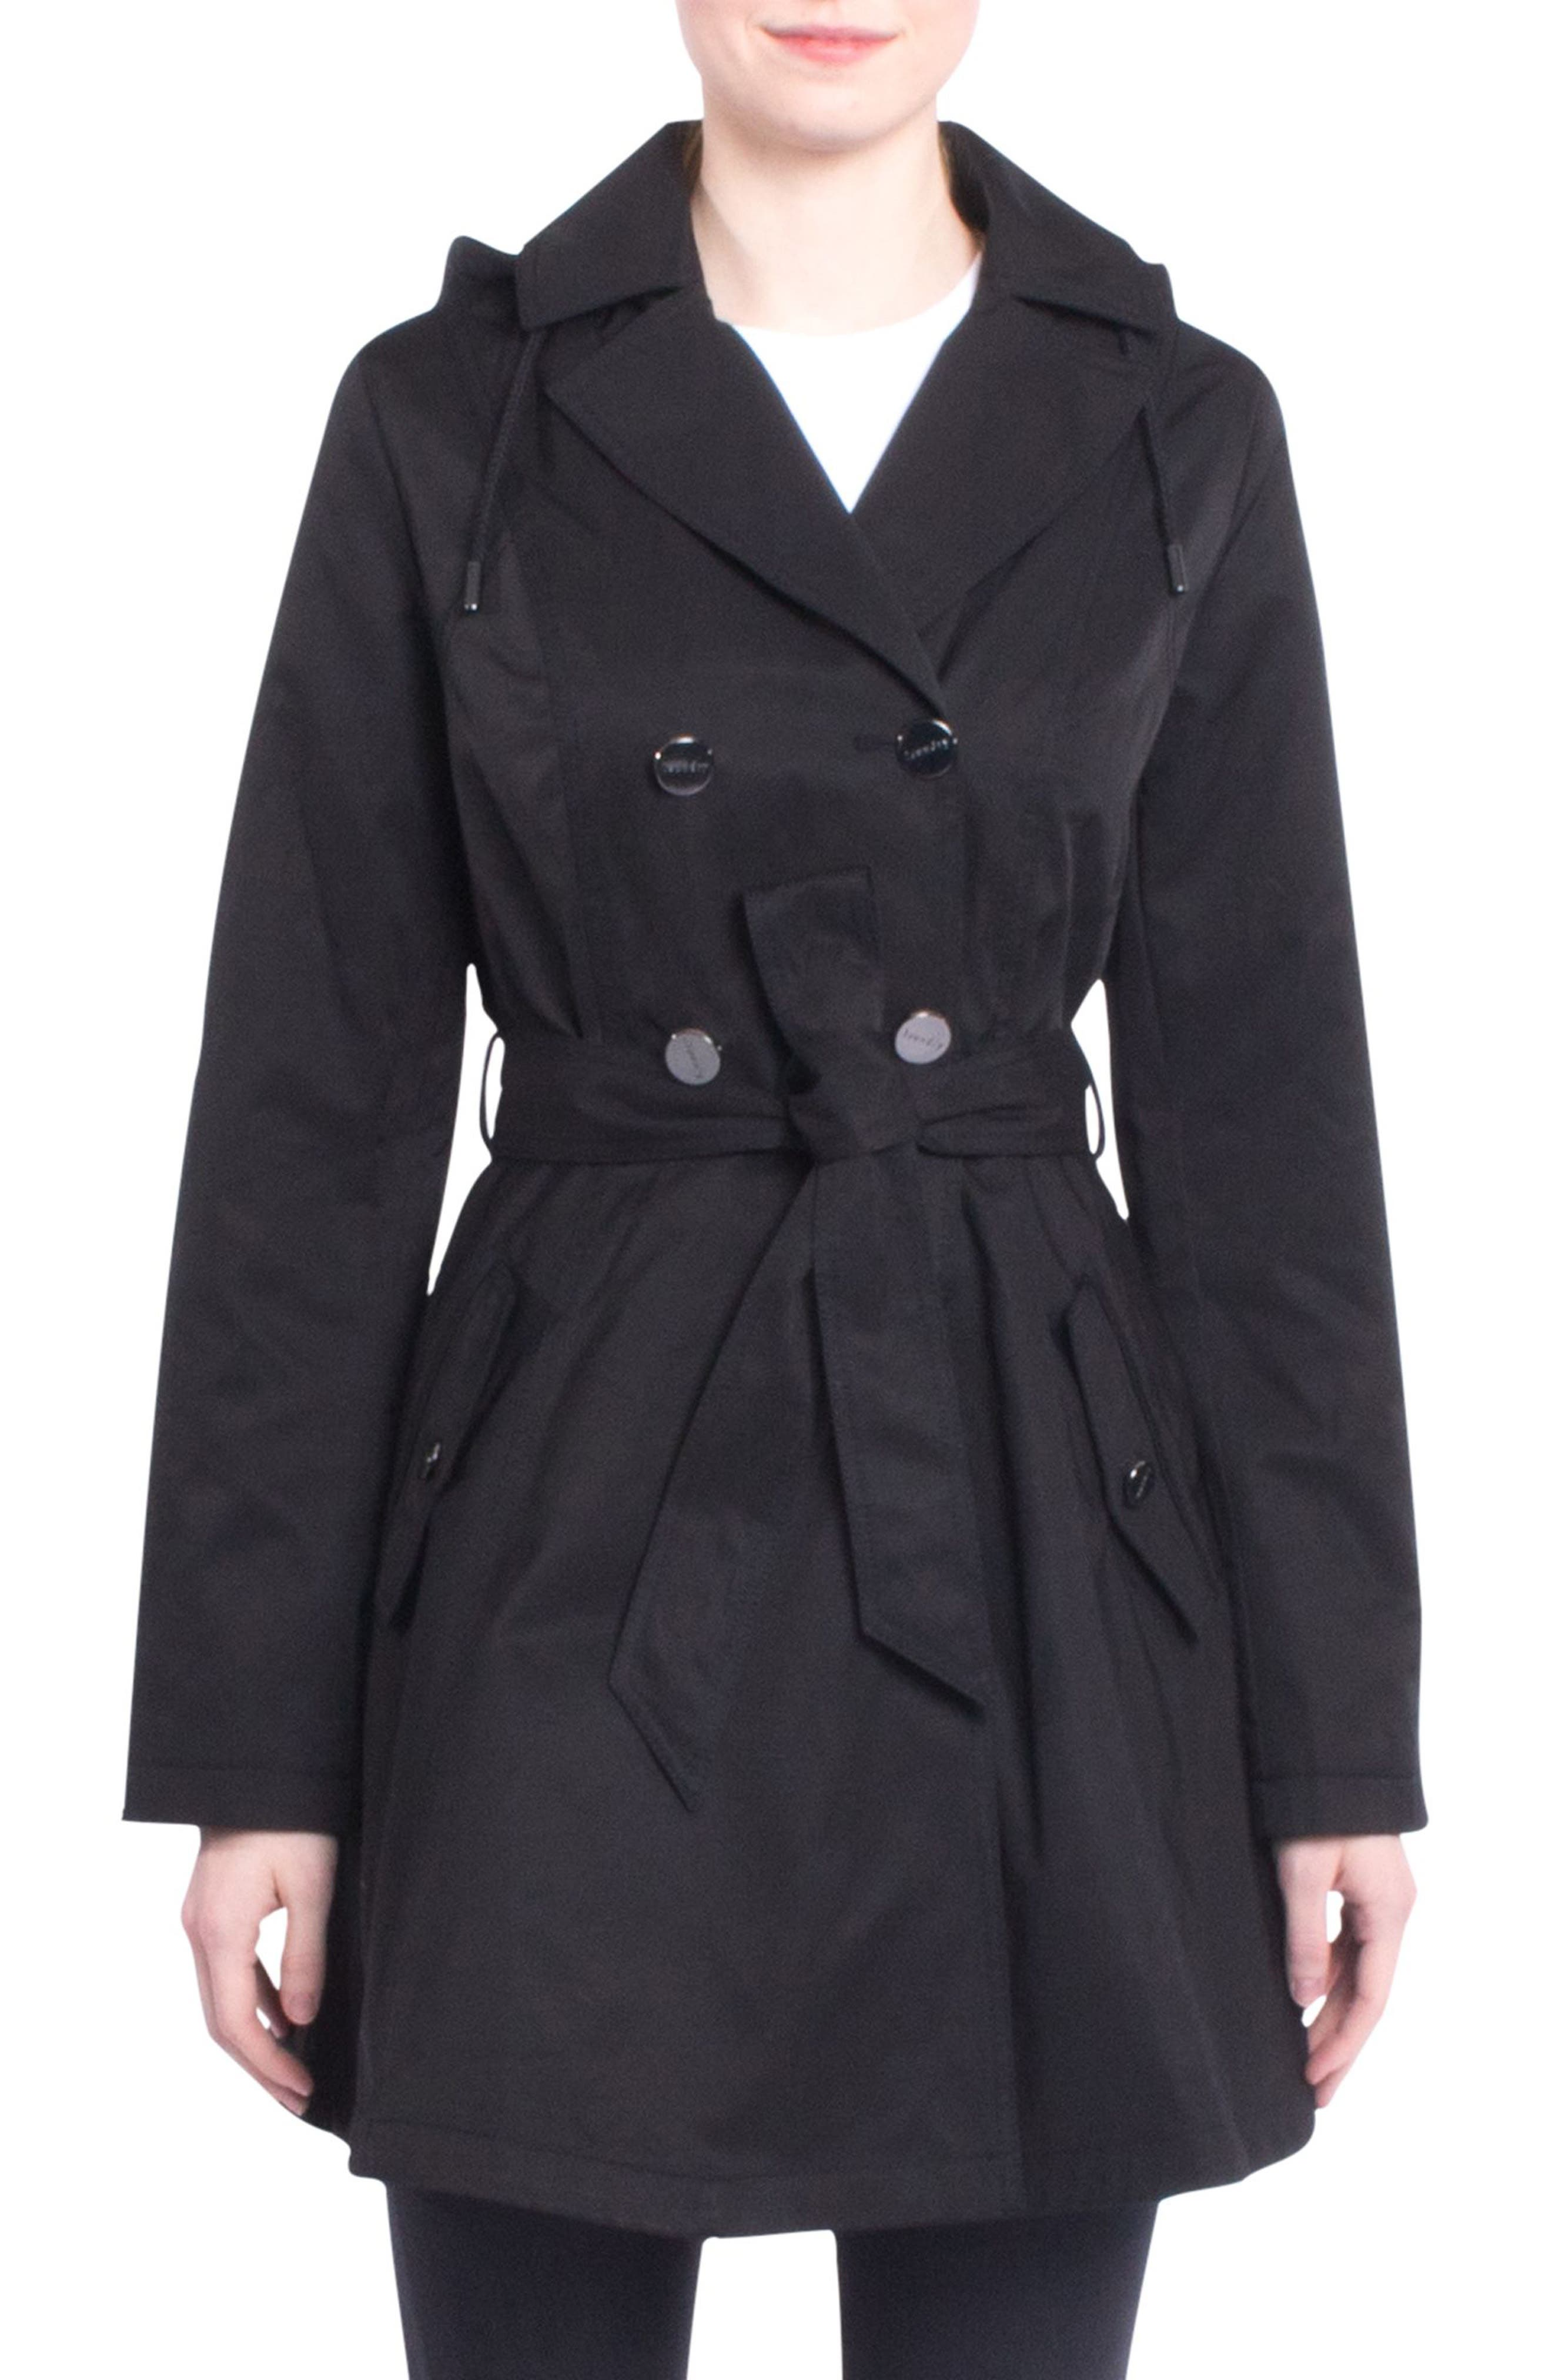 Alternate Image 1 Selected - Laundry by Shelli Segal Fit & Flare Trench Coat